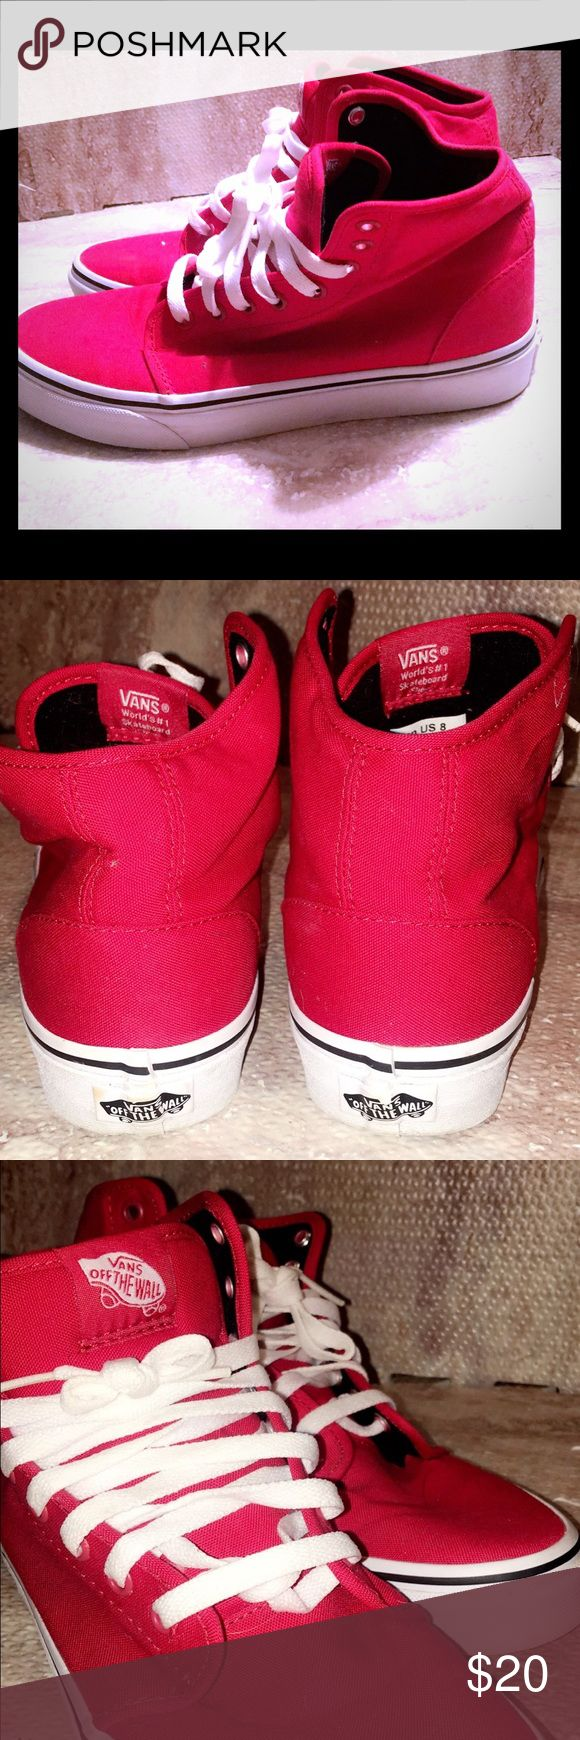 Hi top trainers Vans 106 Hi Red True White Trainer Hi top trainers Vans 106 Hi Red True White Trainers Red Shoes T872413 Men's size 8. Gently worn. Fuz on inside material, no other defects Vans Shoes Sneakers